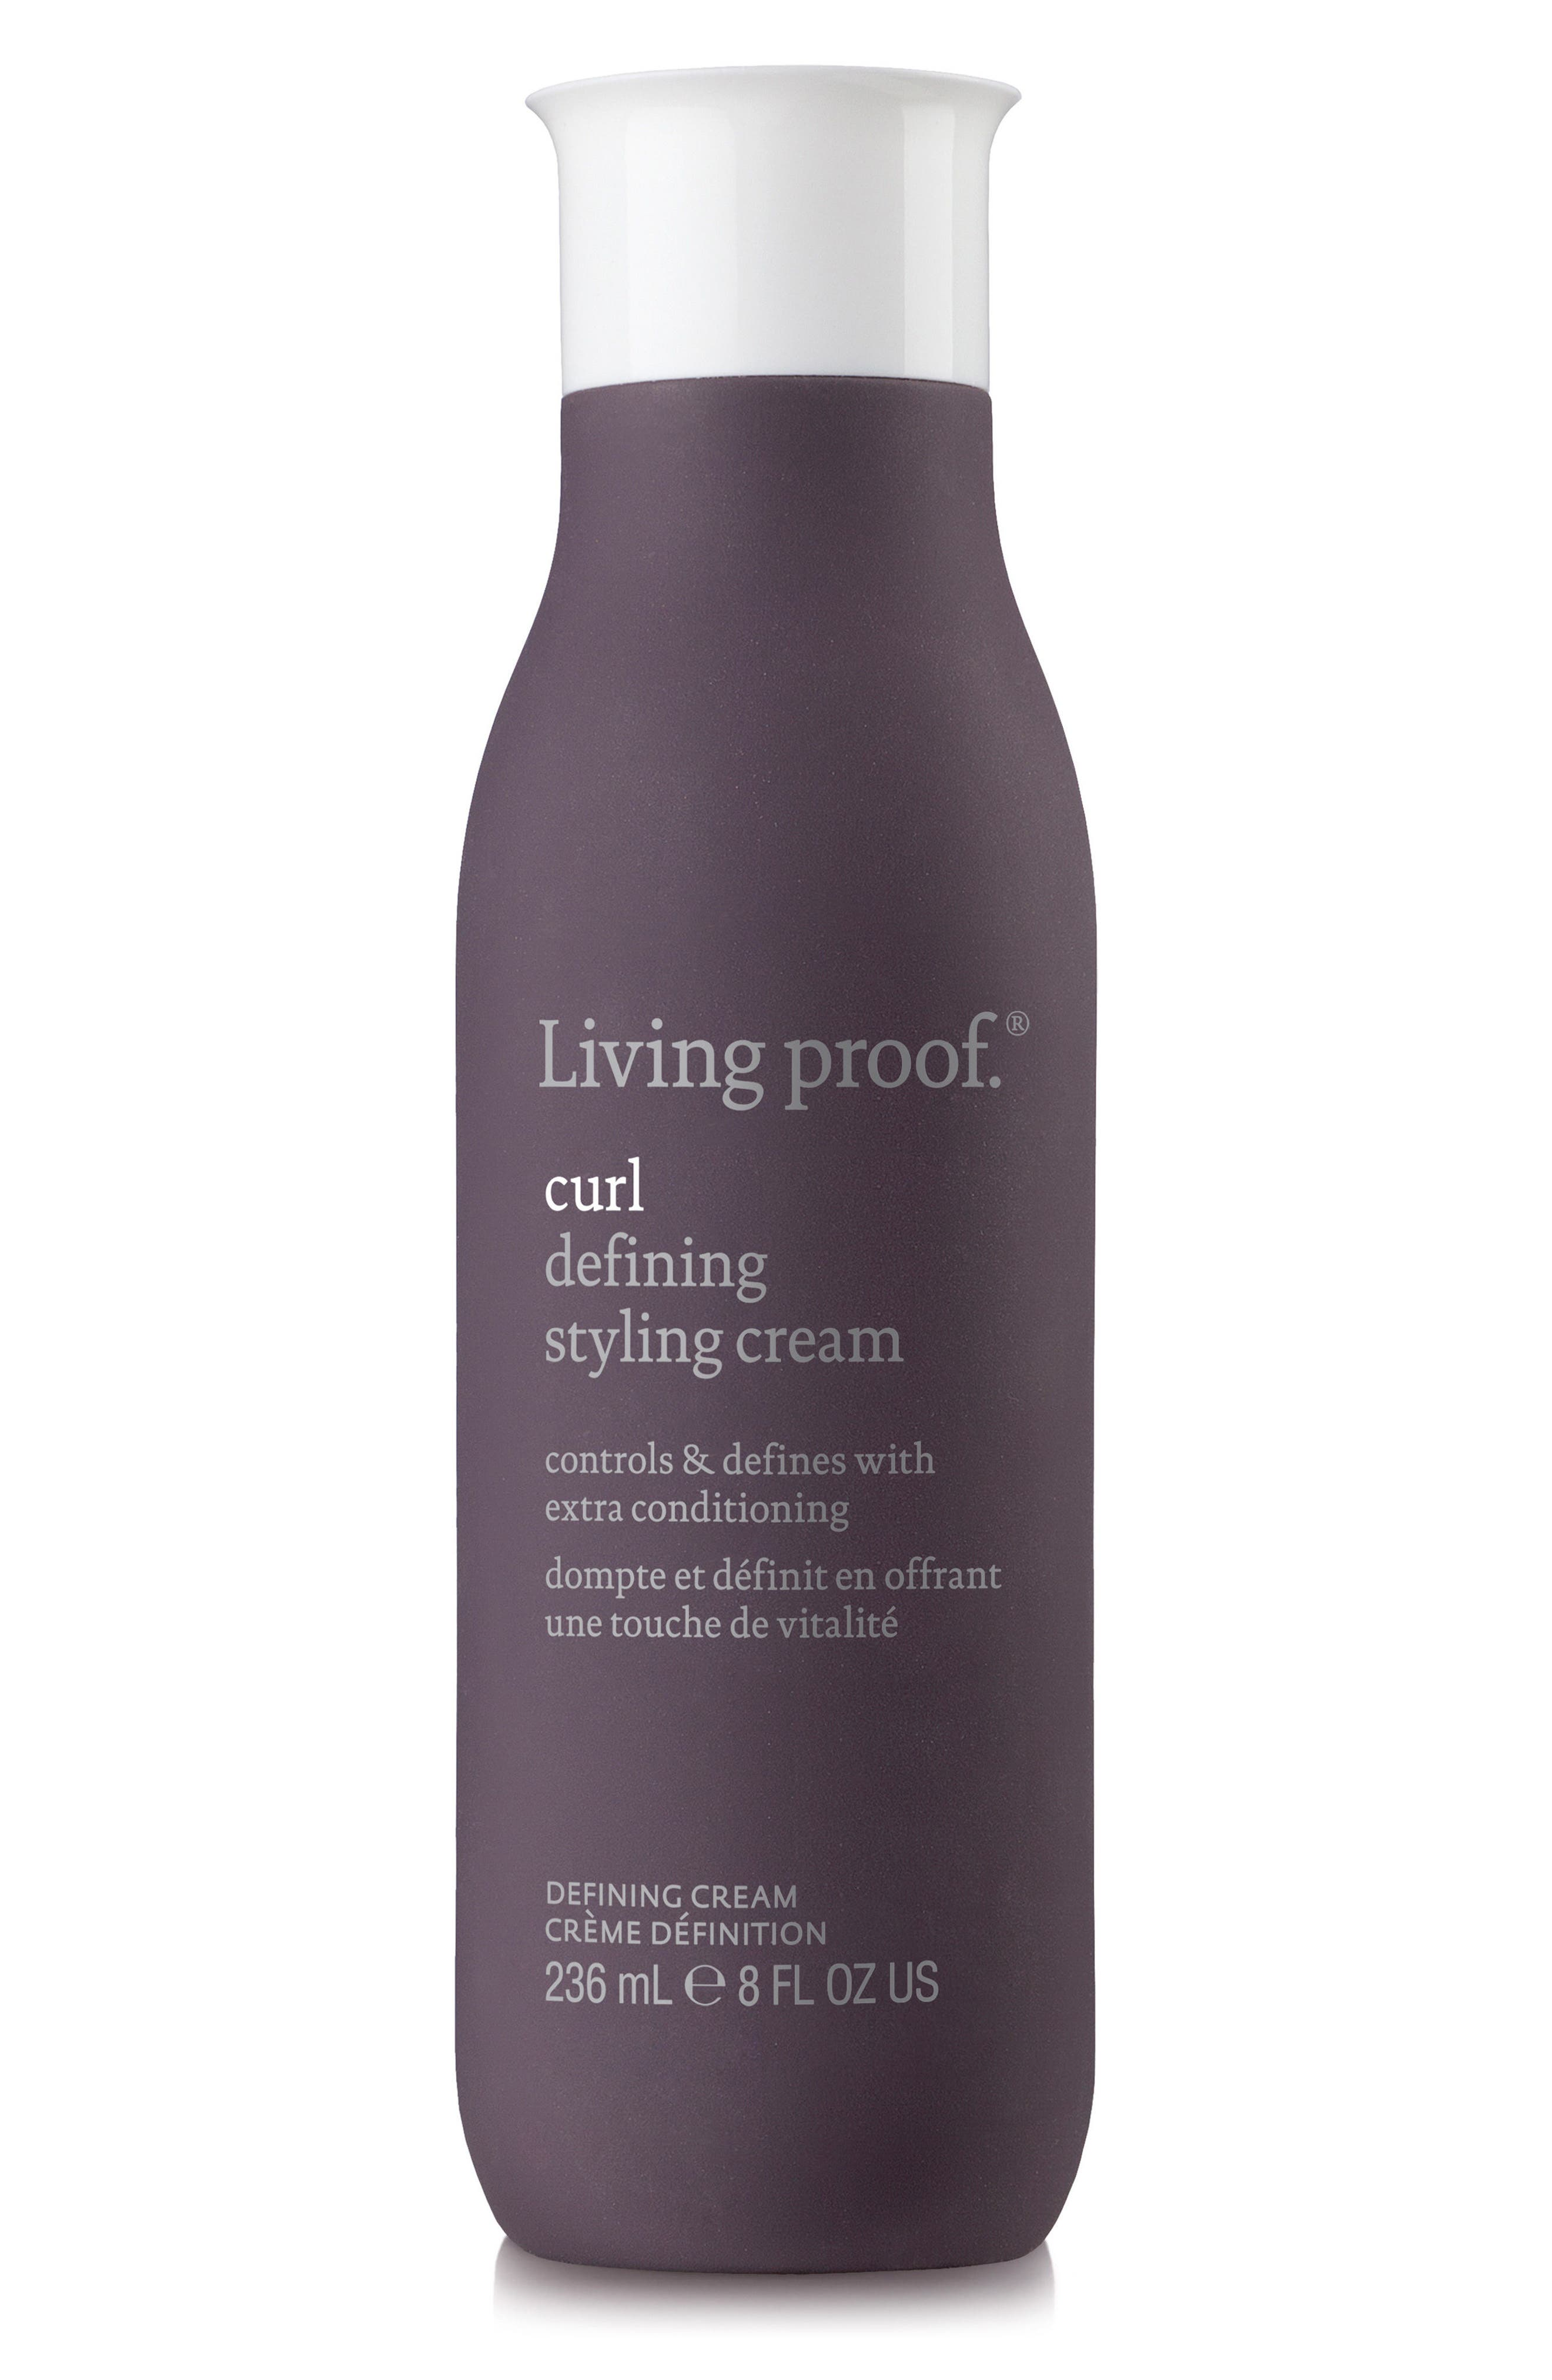 Alternate Image 1 Selected - Living proof® Curl Defining Styling Cream